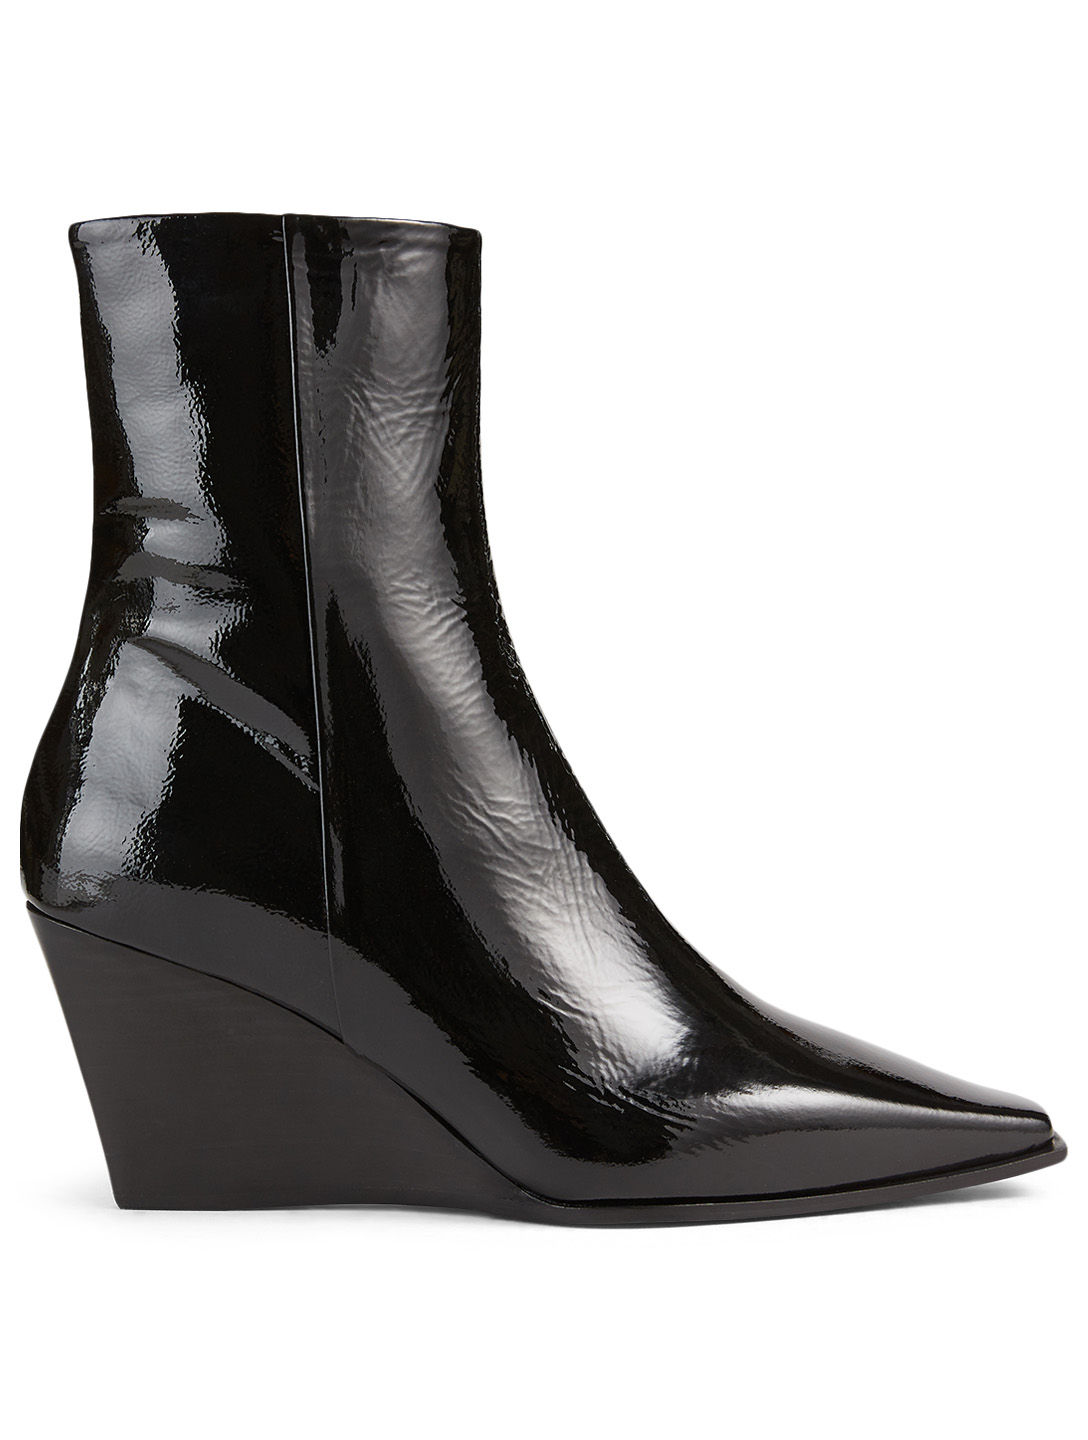 AEYDE Lena Patent Leather Wedge Ankle Boots Women's Black